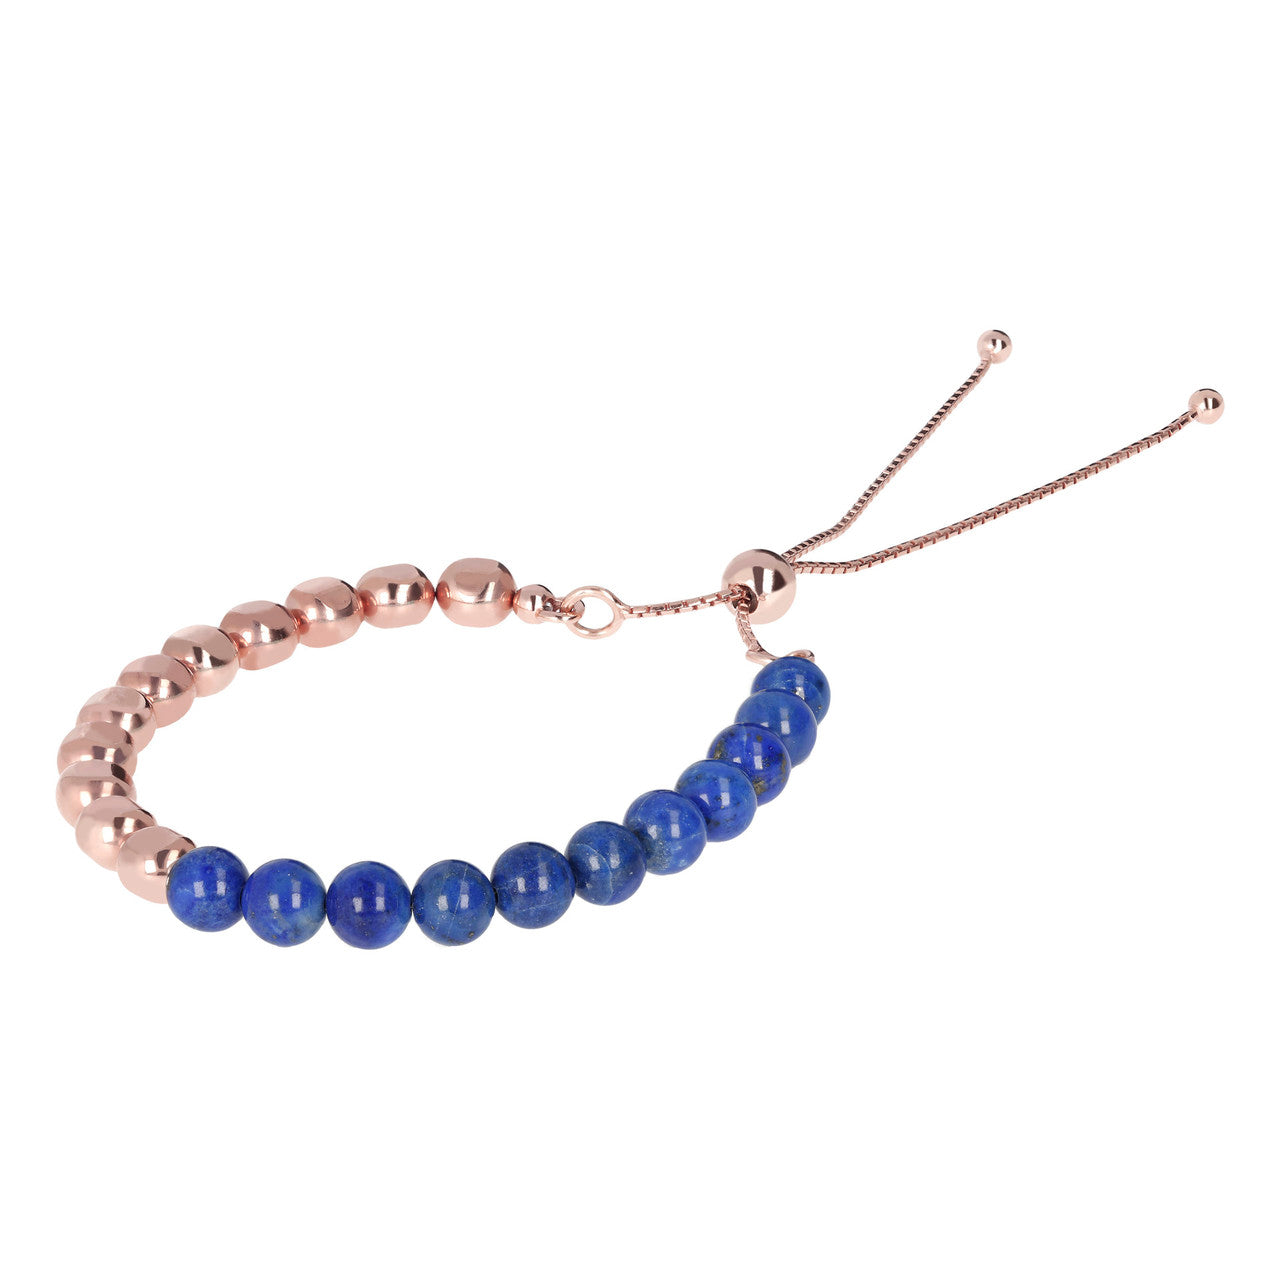 Beaded Friendship Bracelet with Gemstones LAPIS